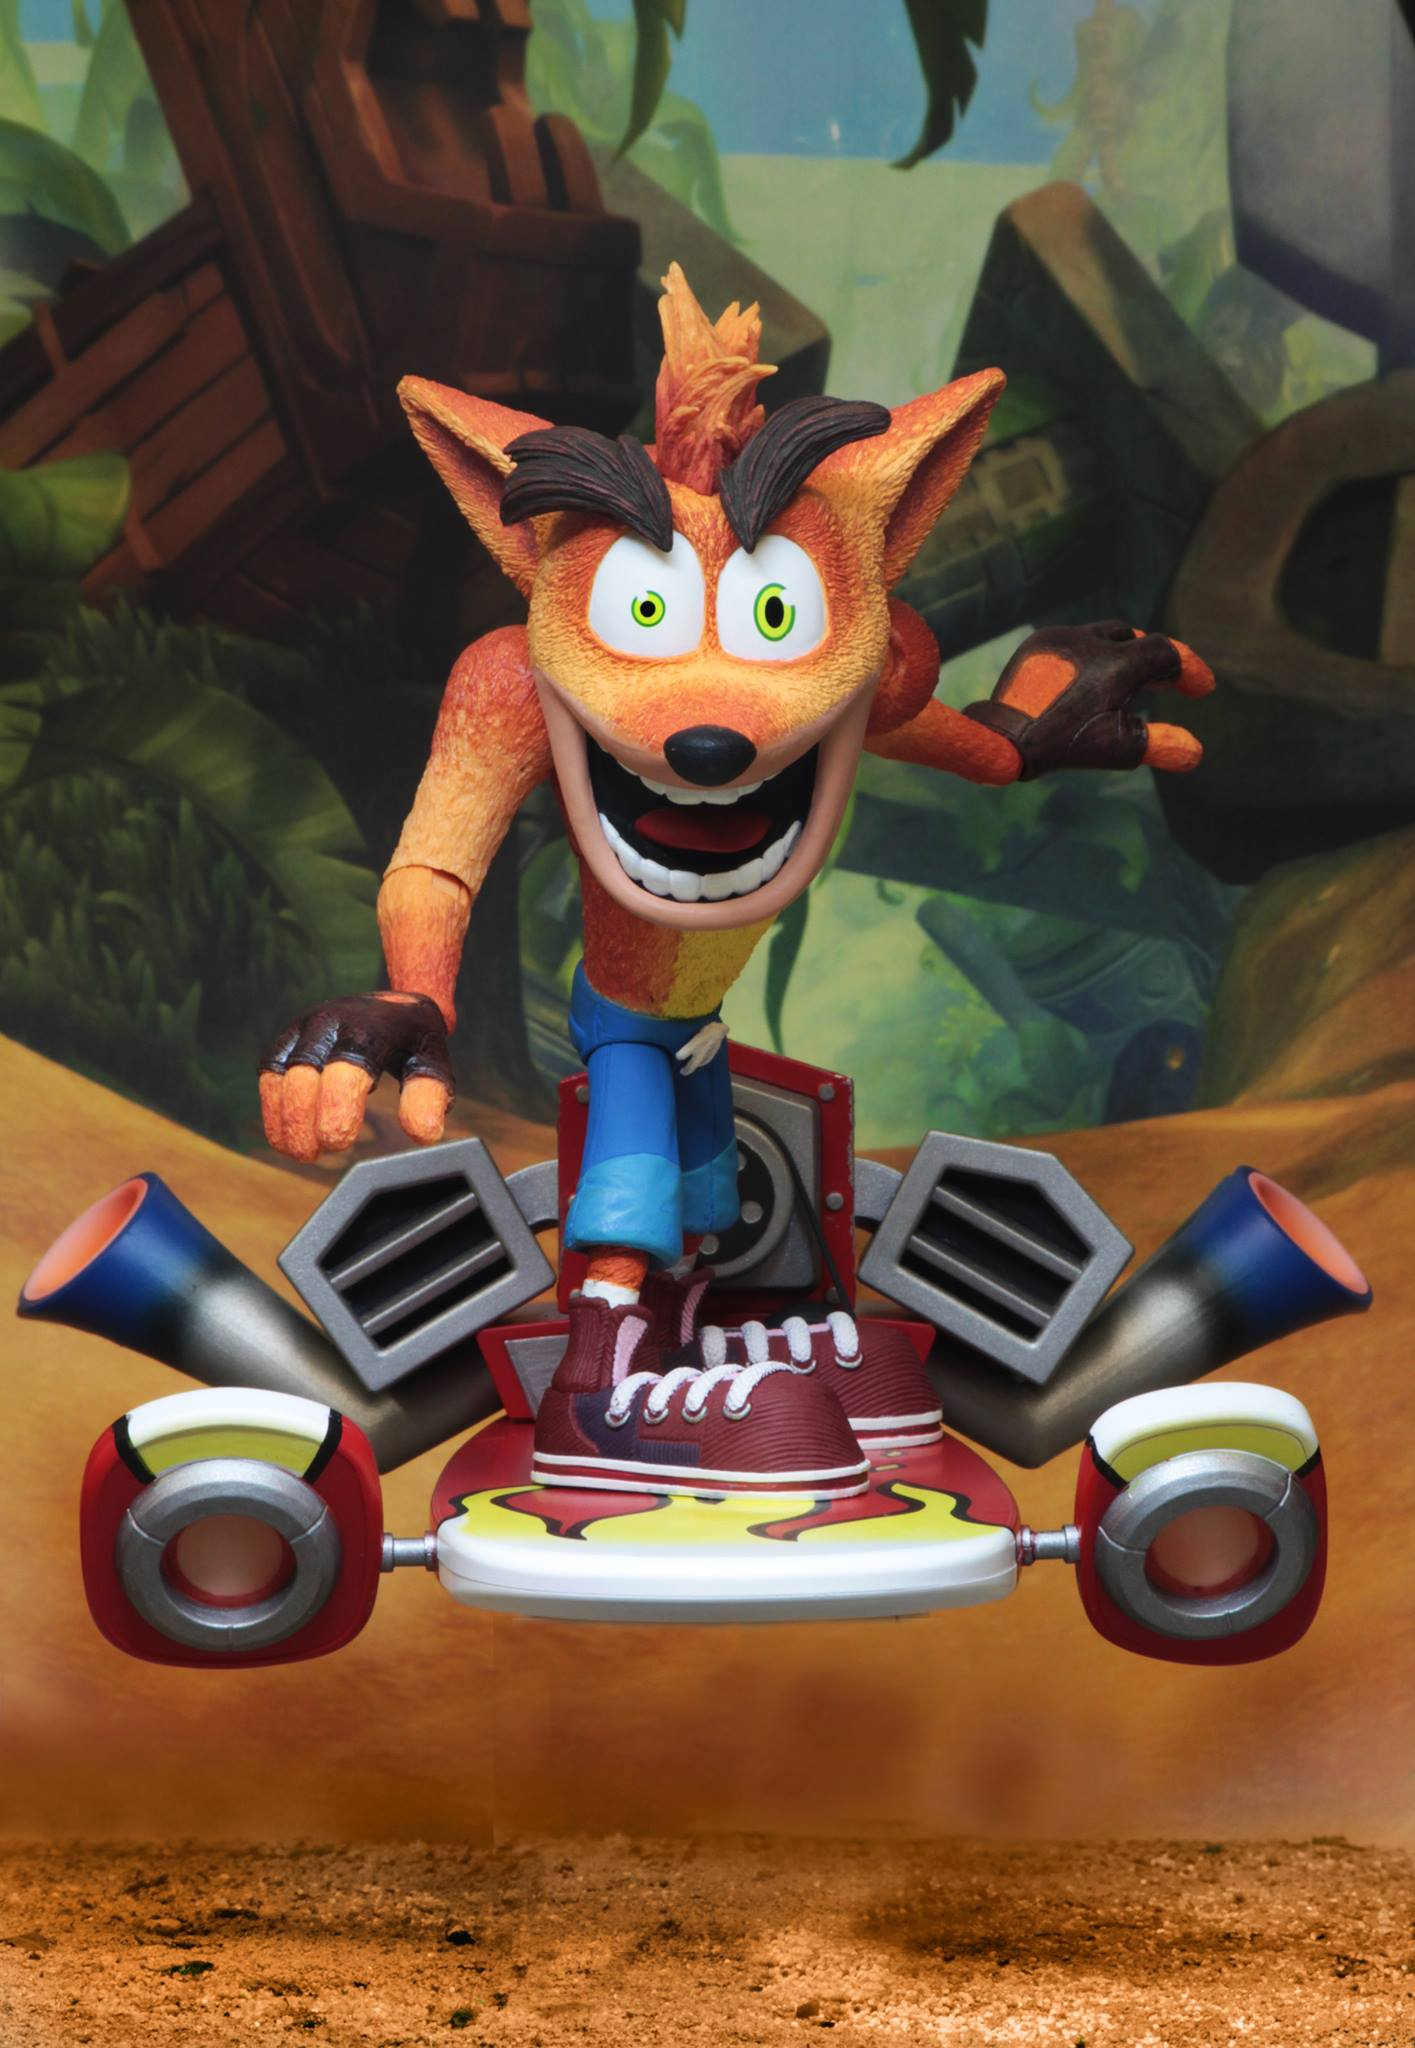 "Фигурка Крэш с ховербордом ""Crash Bandicoot"" от Neca"